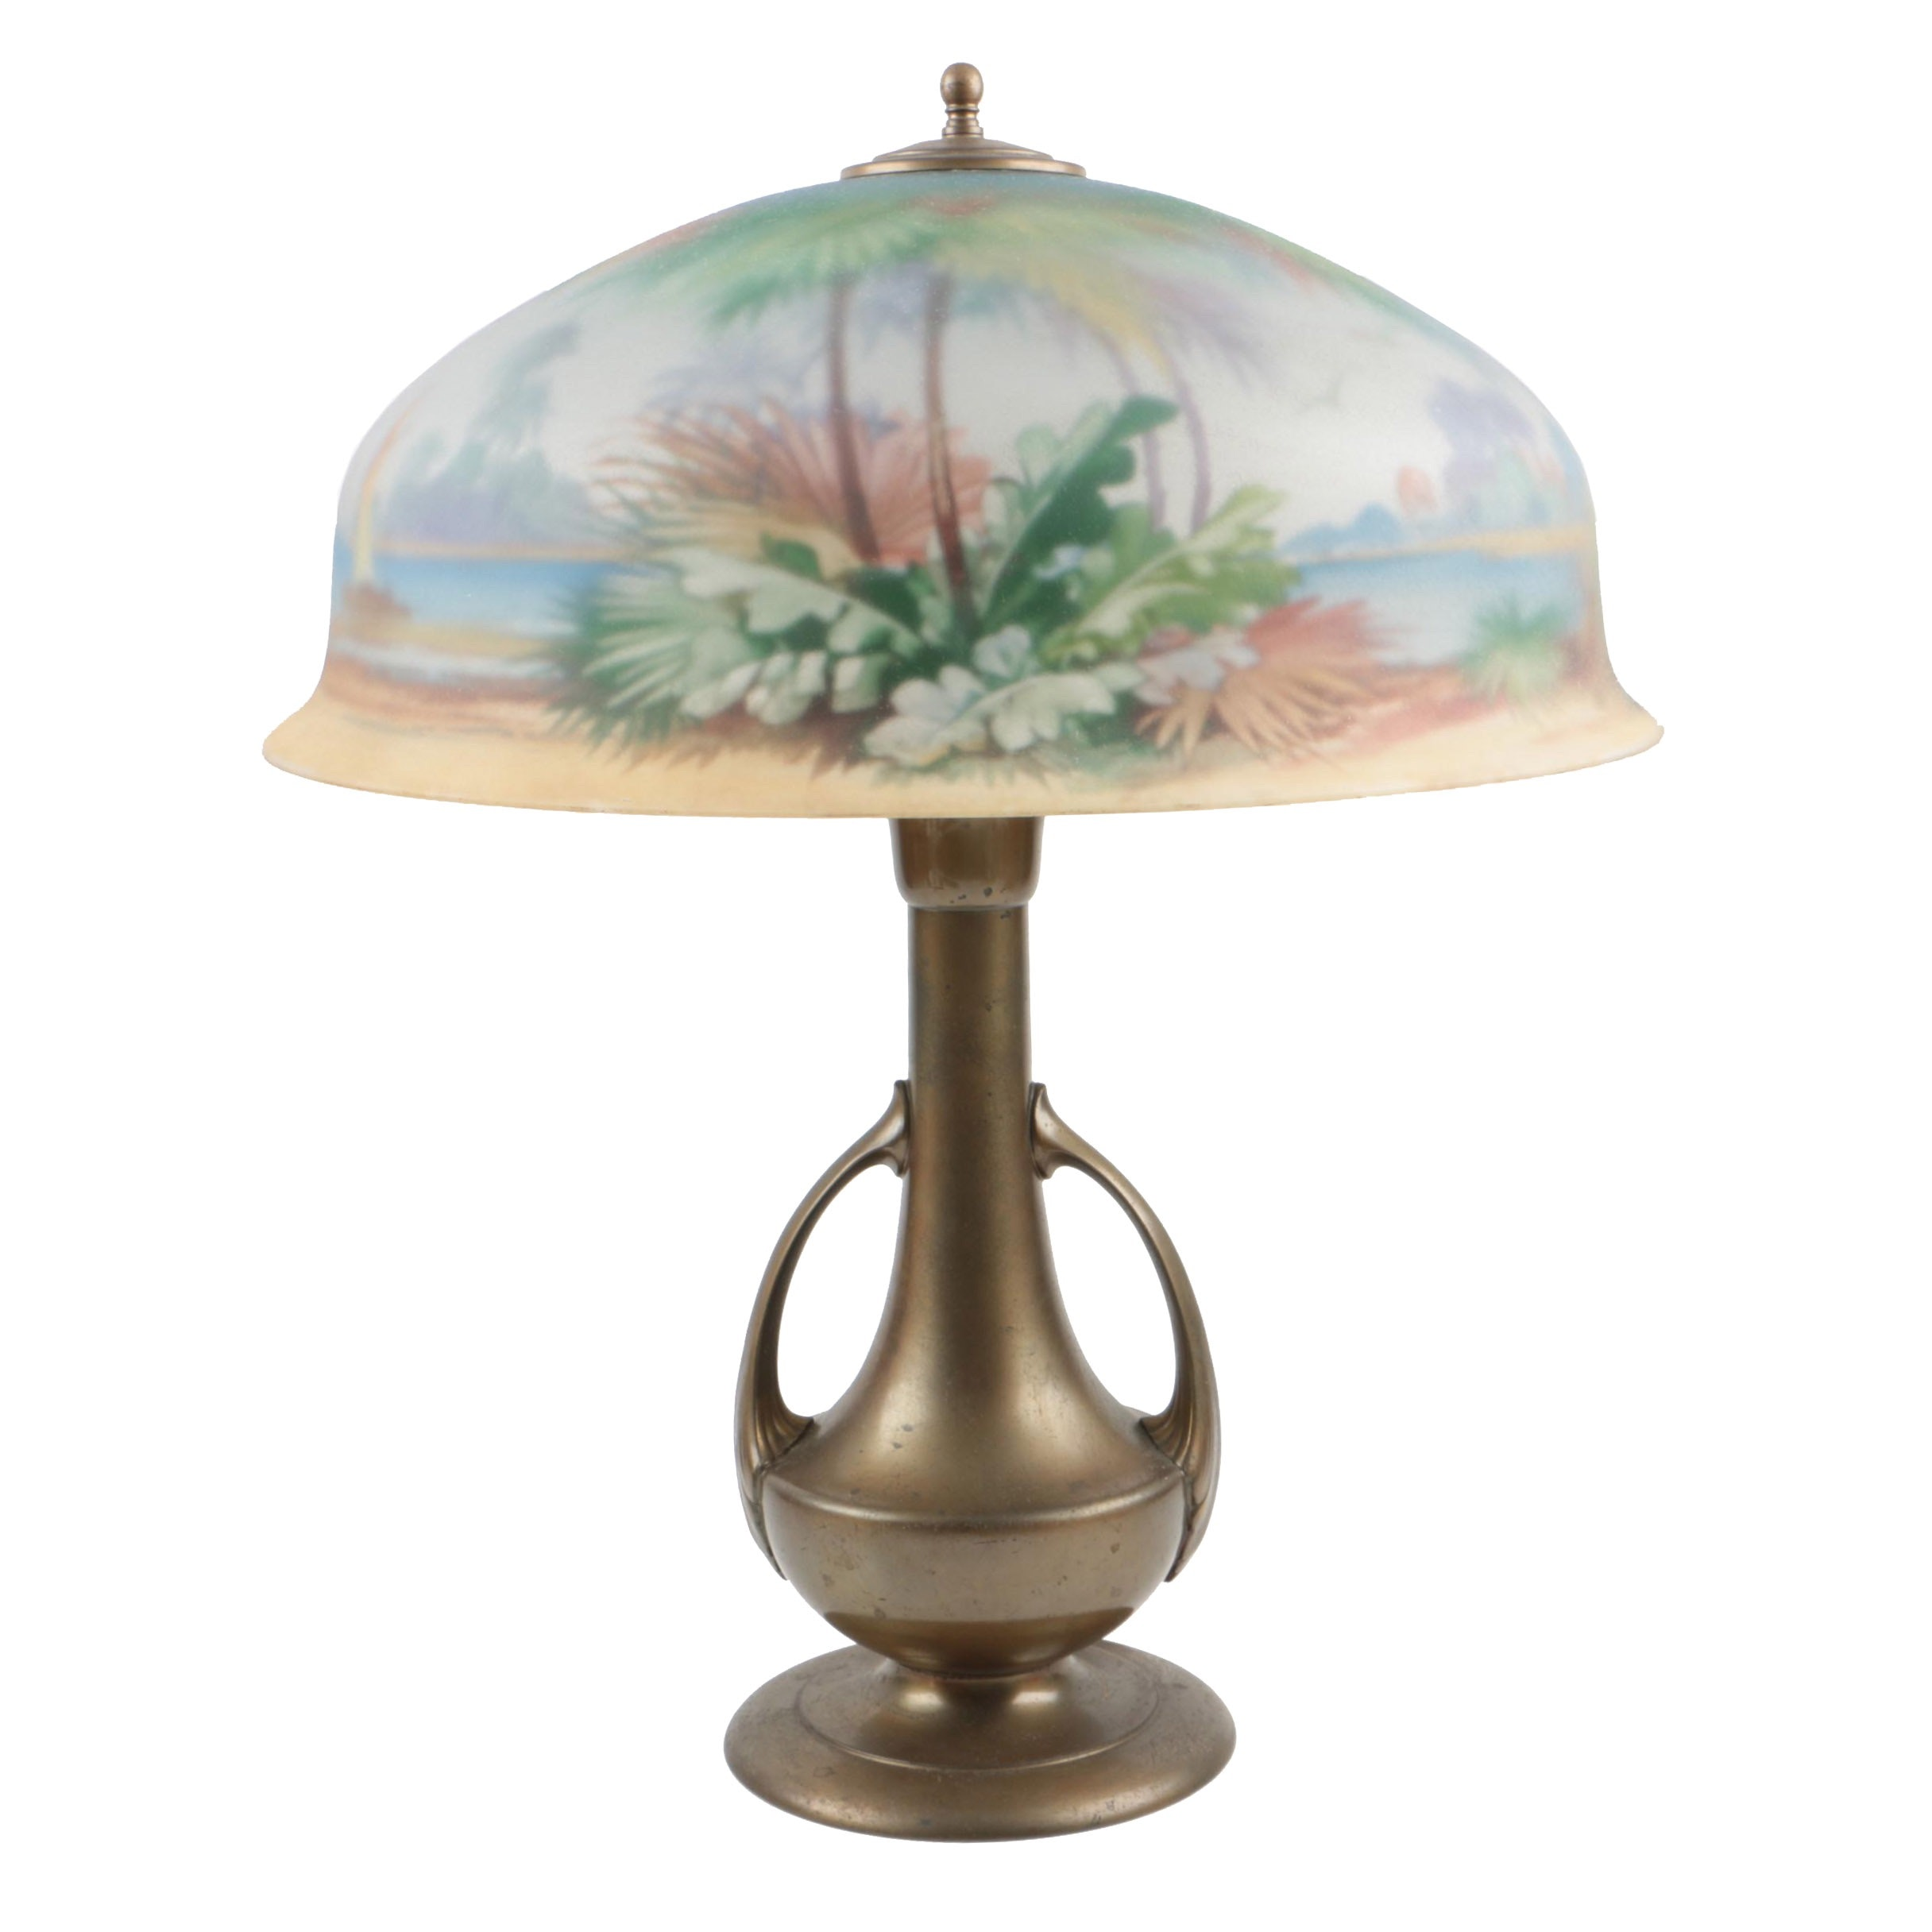 Vintage Pairpoint Lamp with Reverse Painted Tropical Landscape Shade